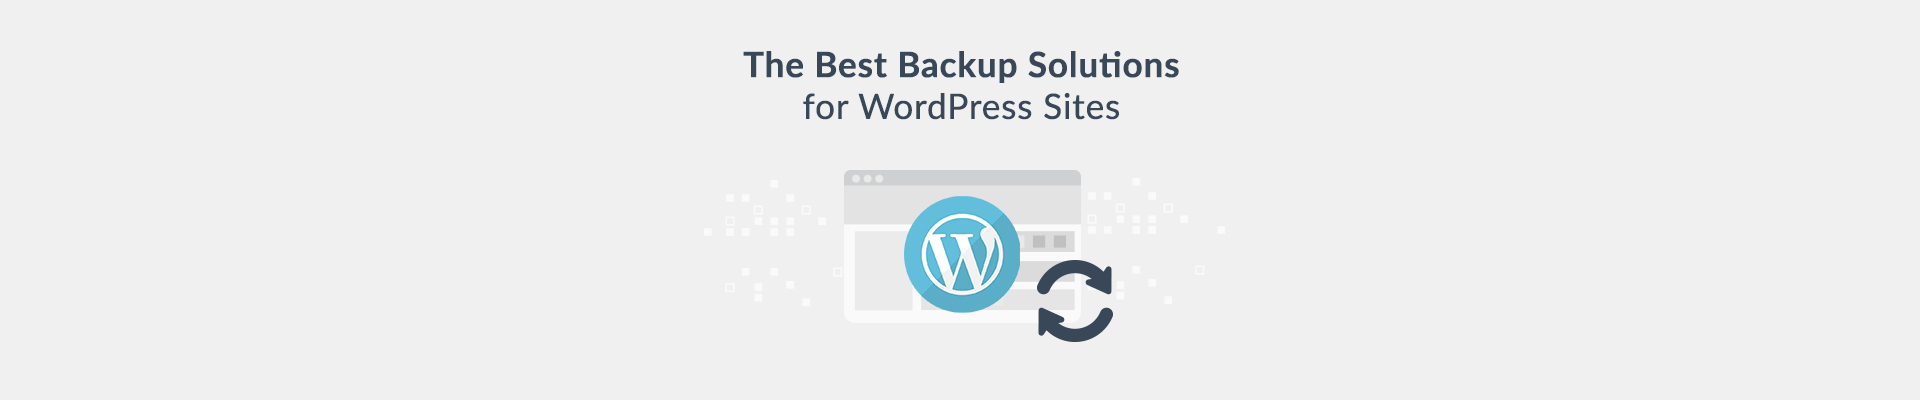 How to backup your WordPress site - best WordPress backup solutions - Plesk